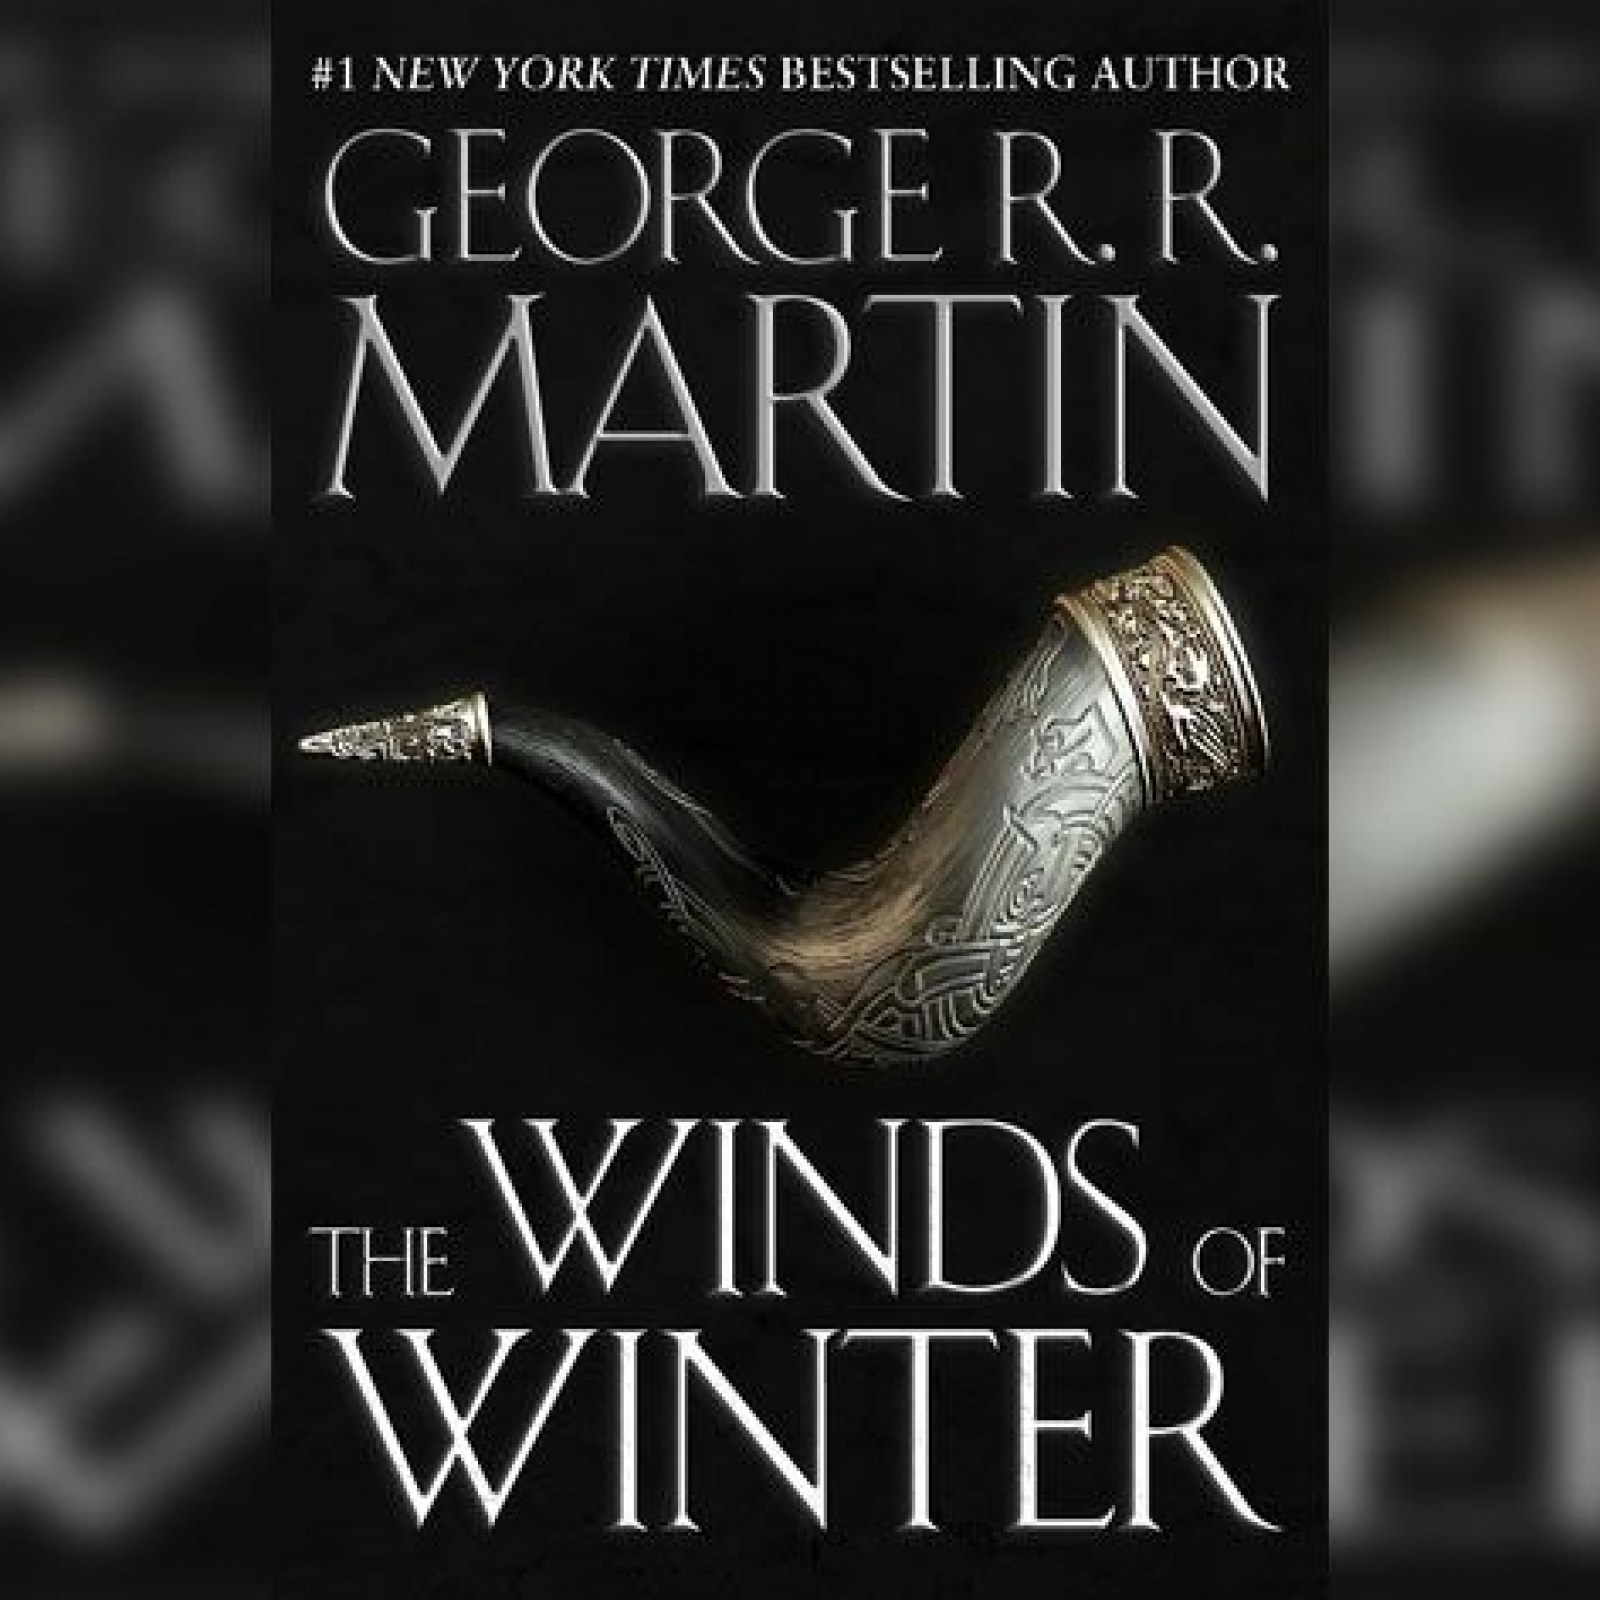 The winds of winter release